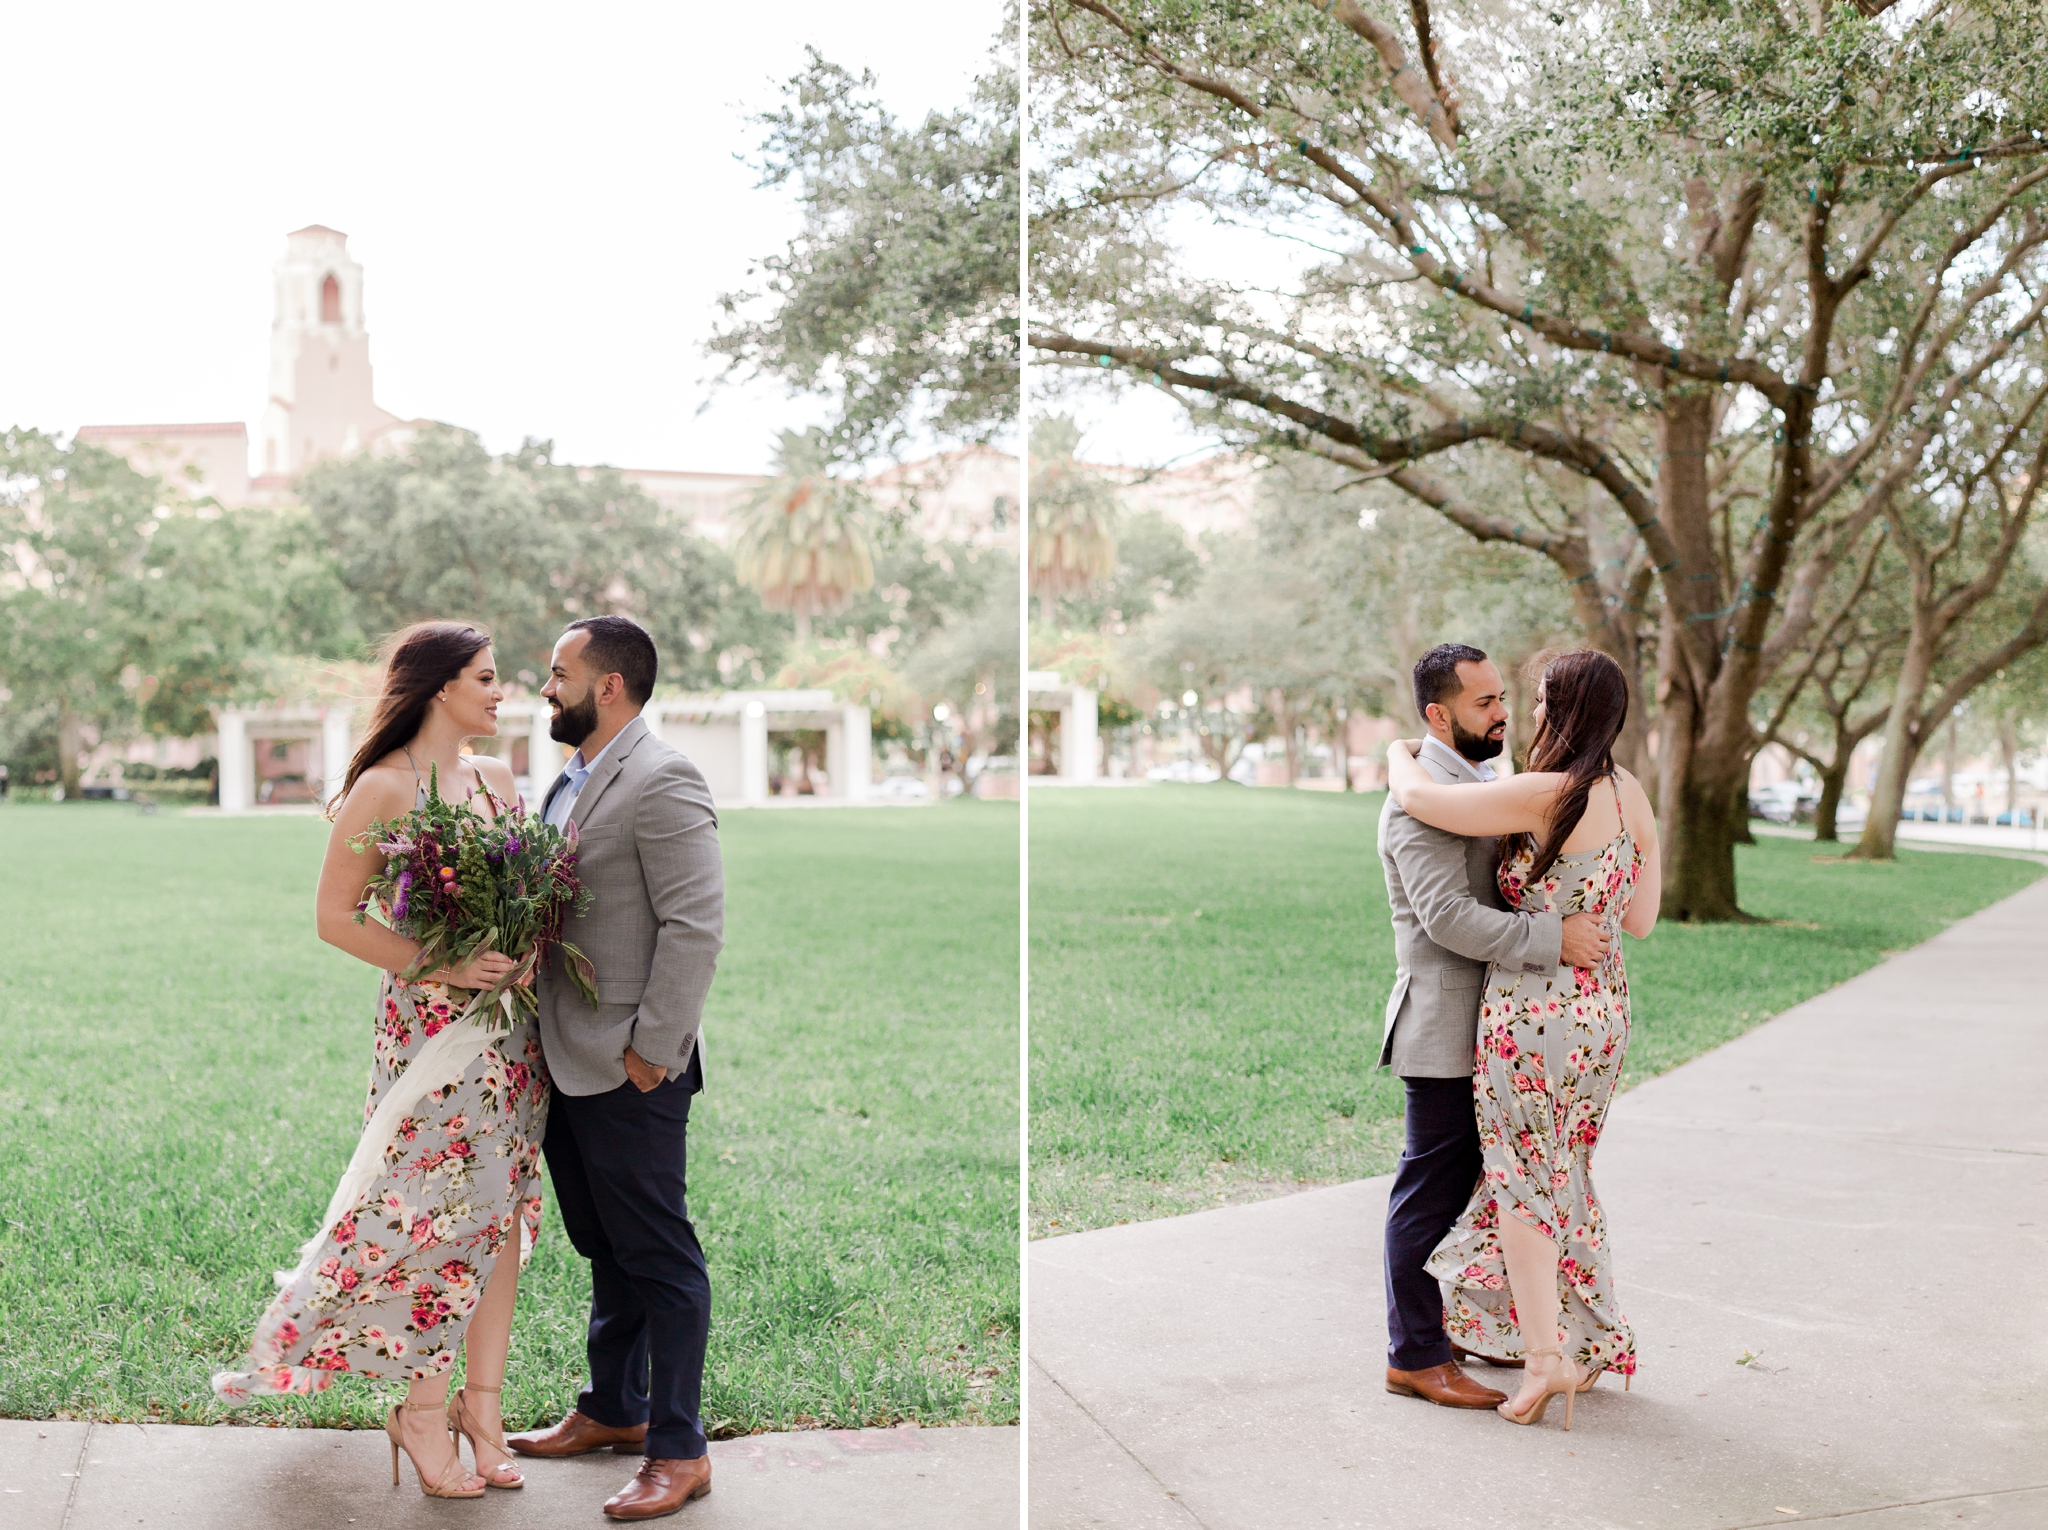 St-pete-florida-engagement-session-nicole-mike-I58A6848-1.jpg